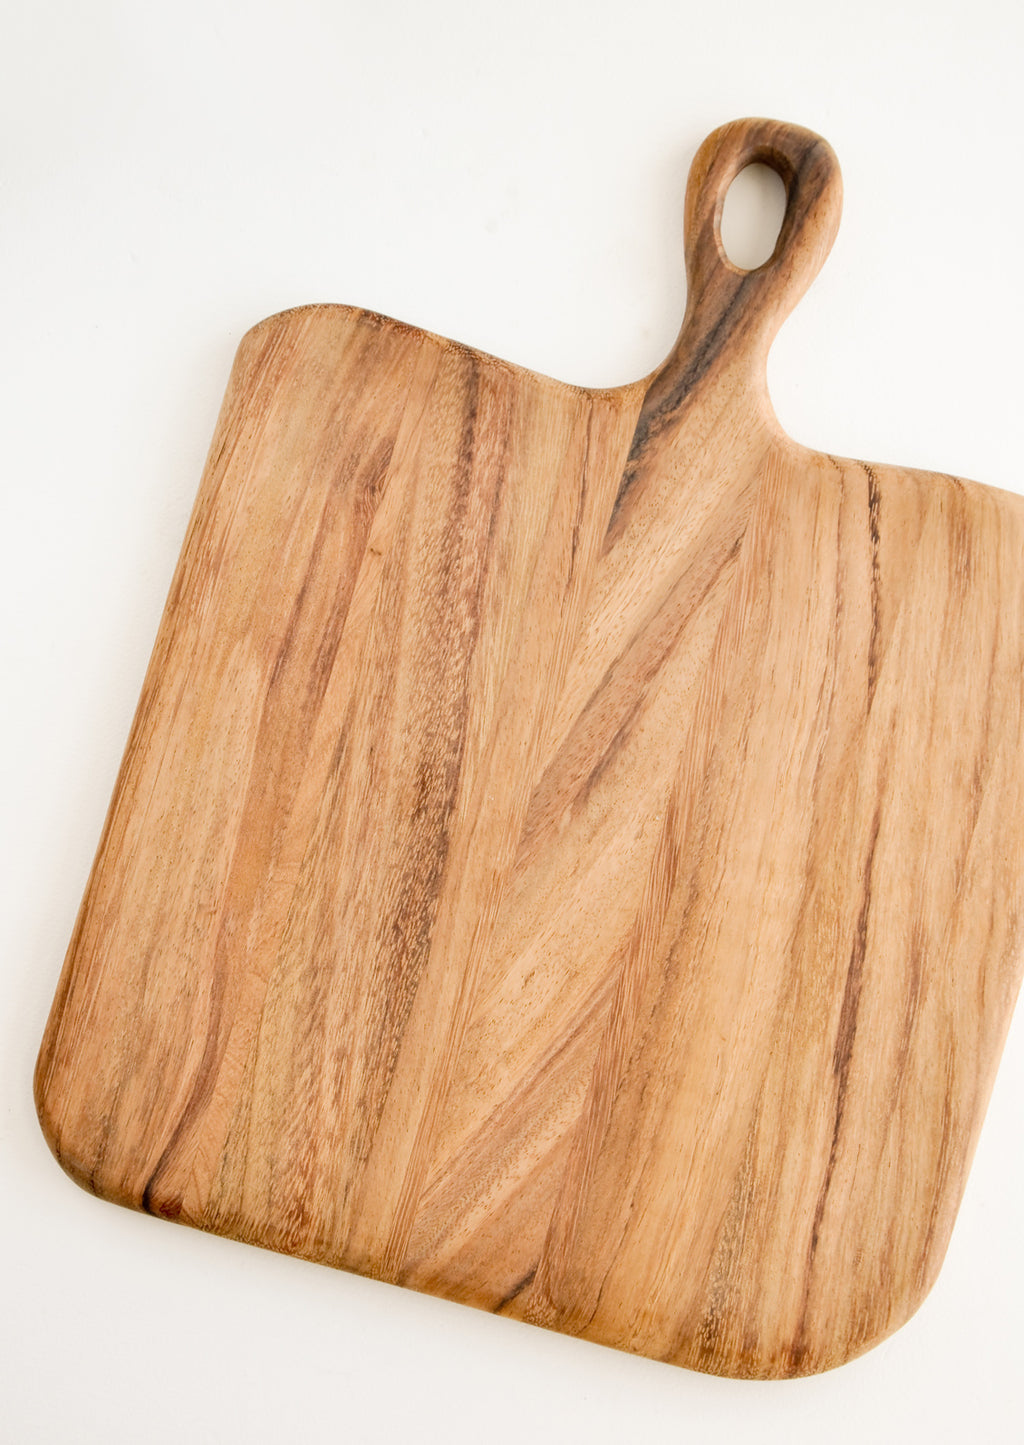 Square [$58.00]: Loop Handle Serving Board in Square [$58.00] - LEIF